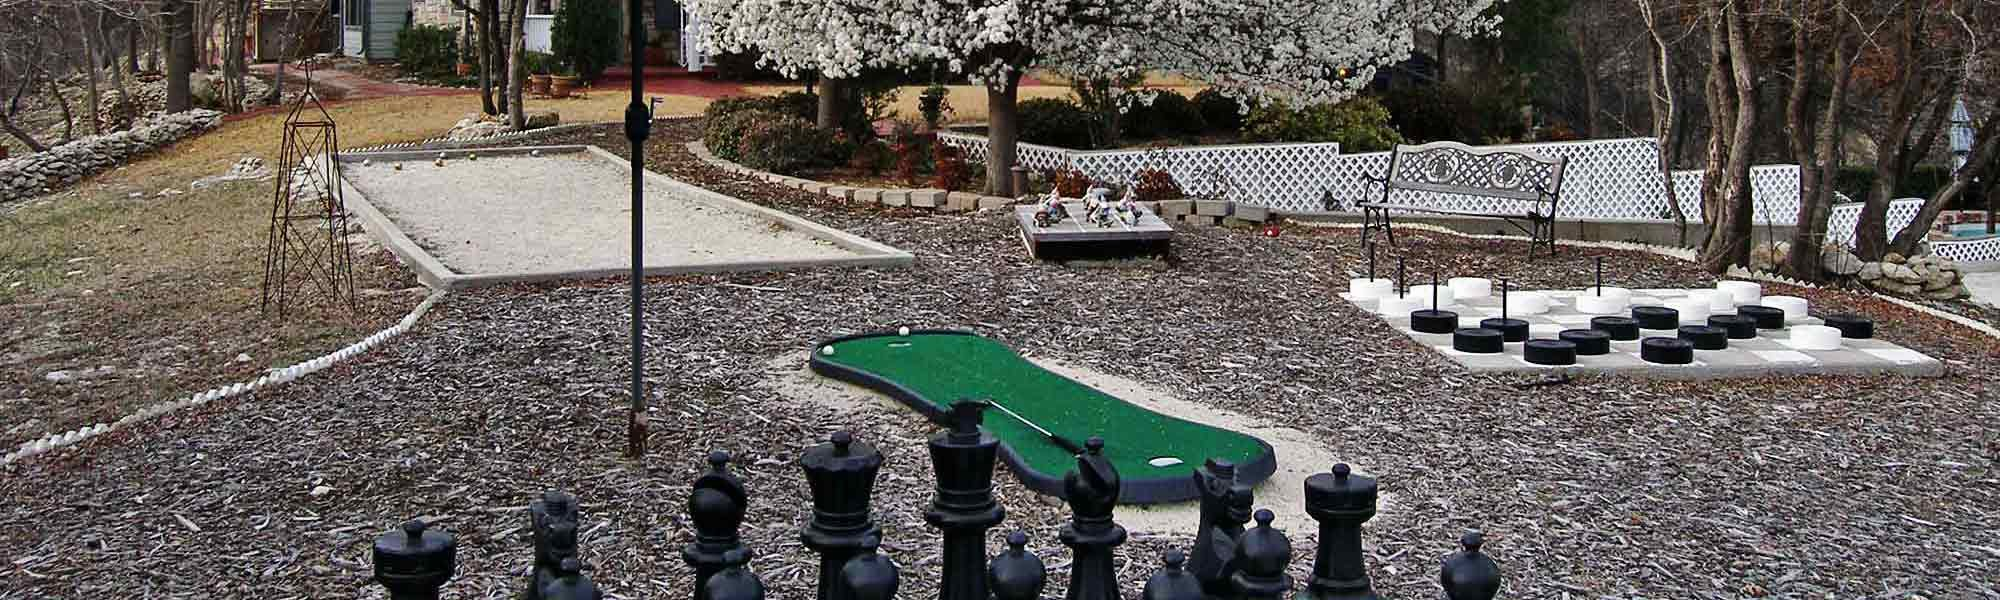 backyard games of checkers, mini golf, and chess